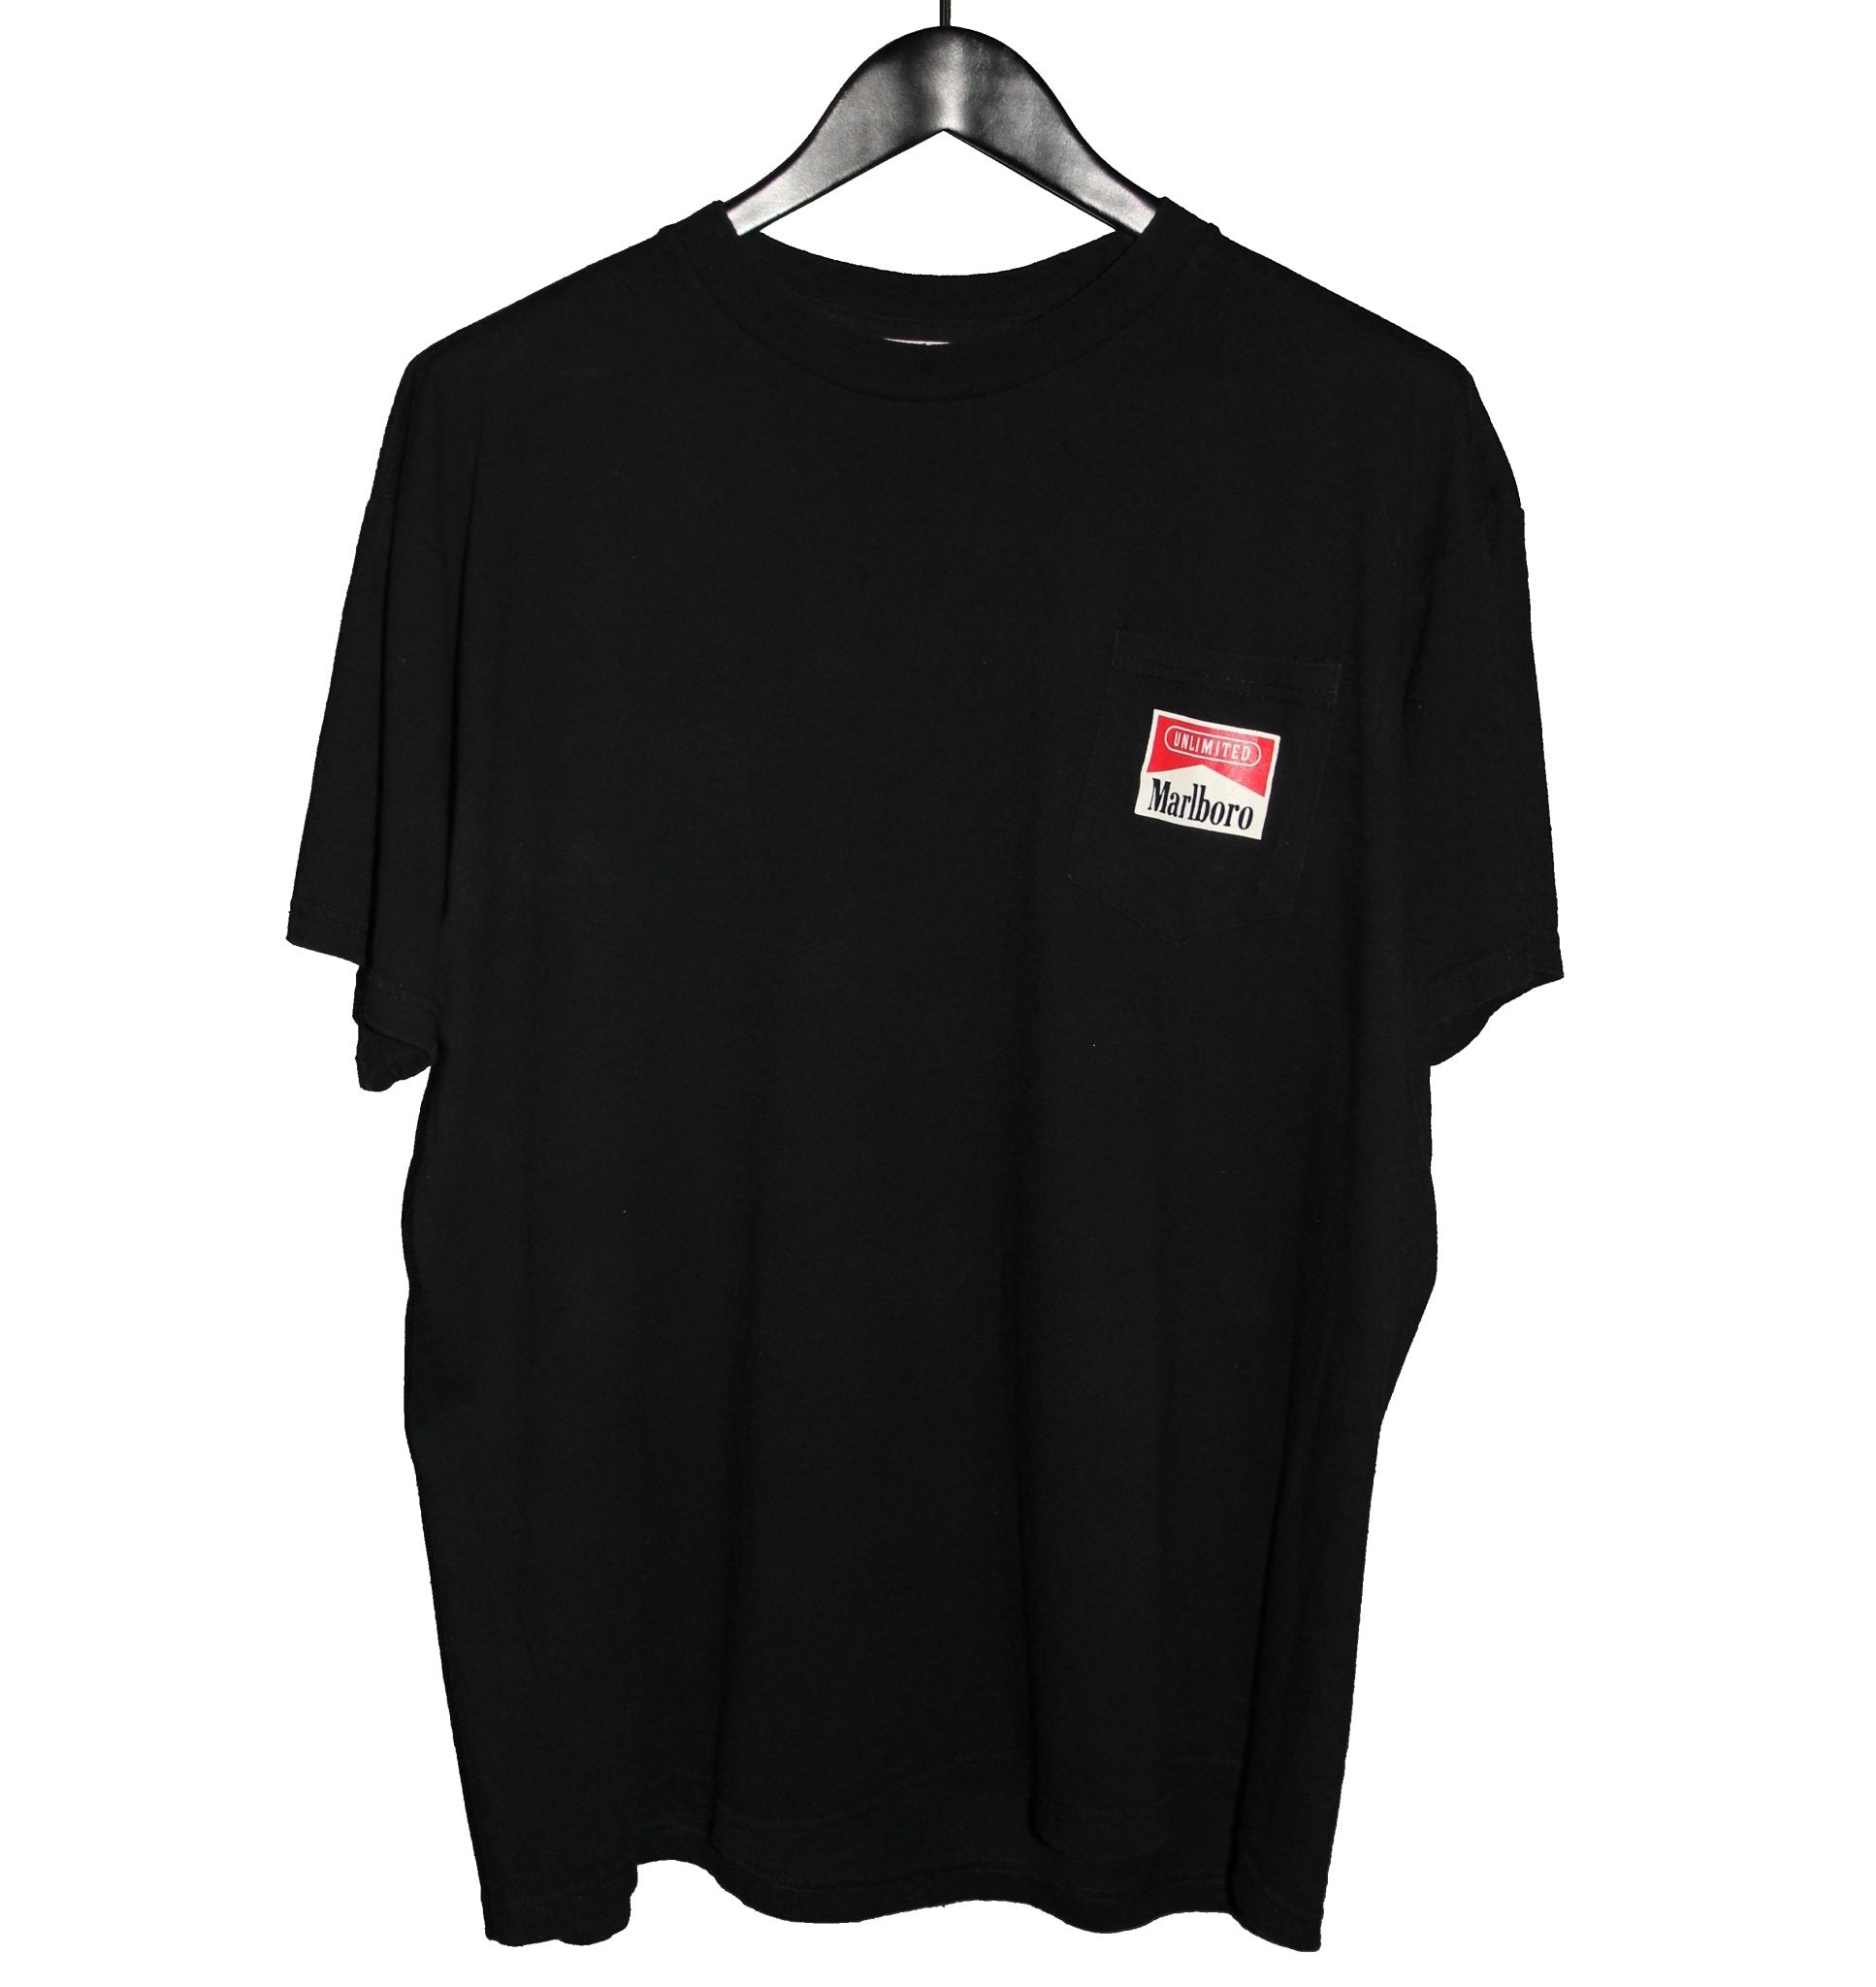 Marlboro Unlimited 90s Racing Shirt - Faded AU